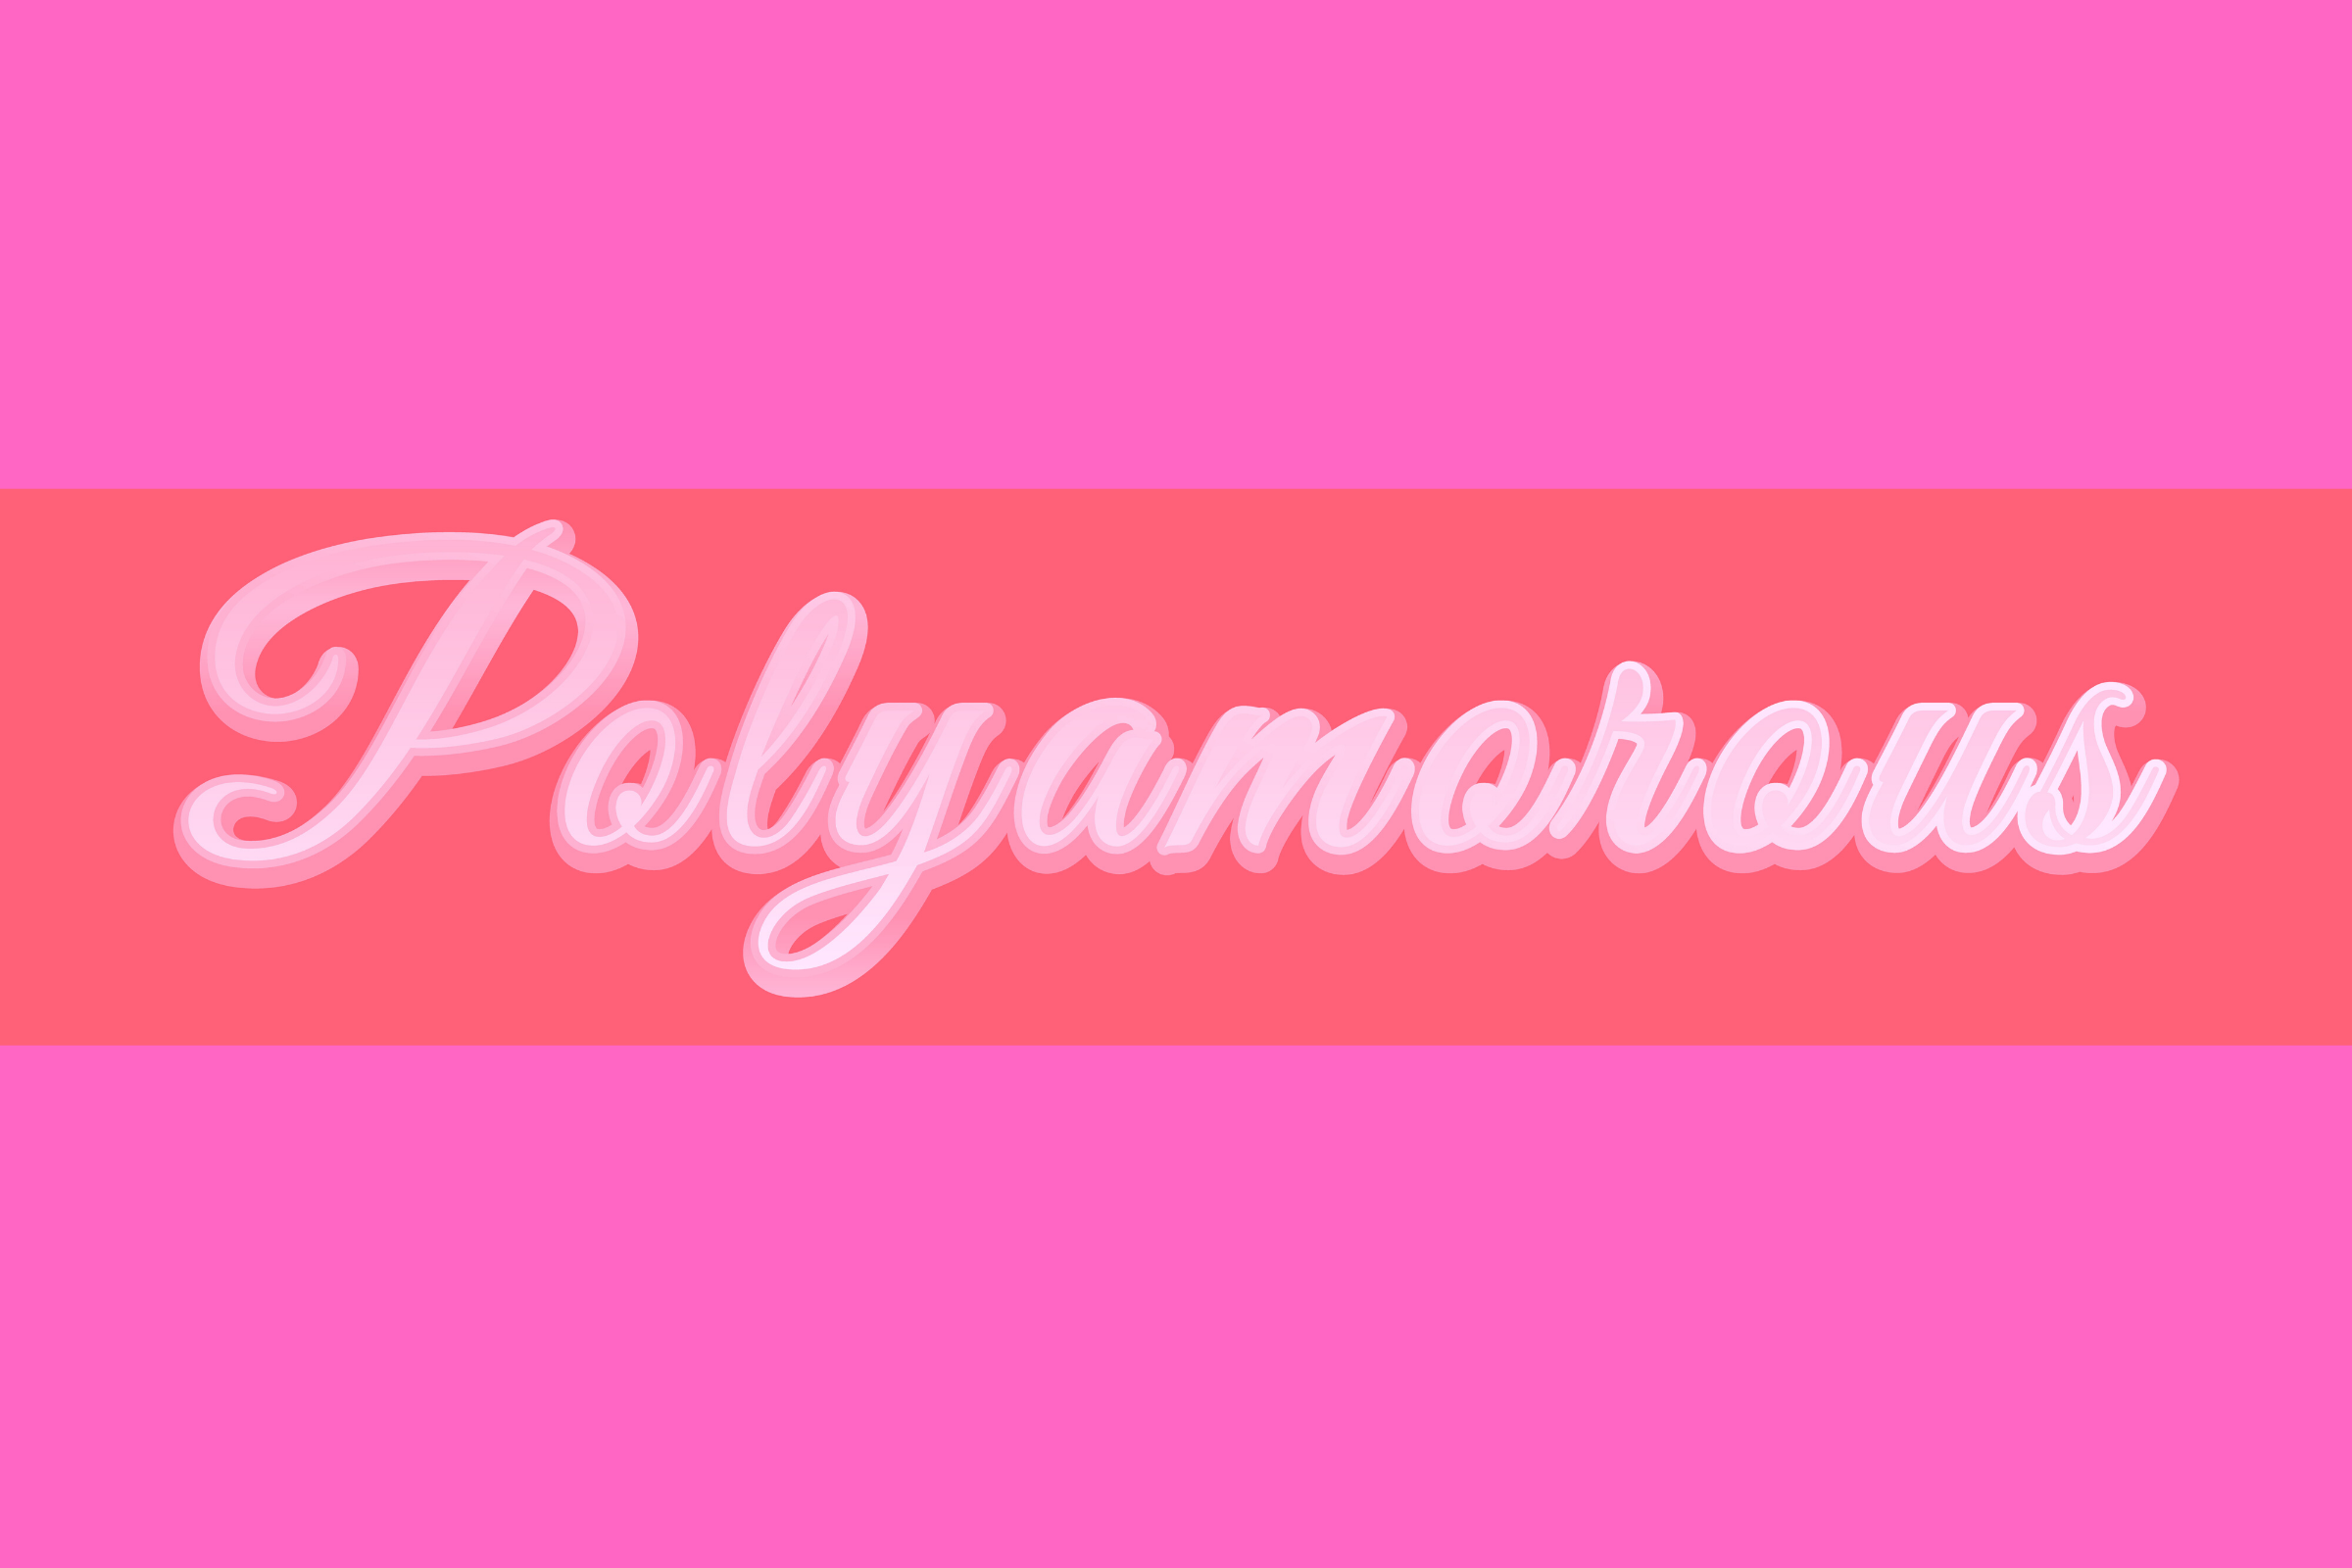 Polyamorous Relationships